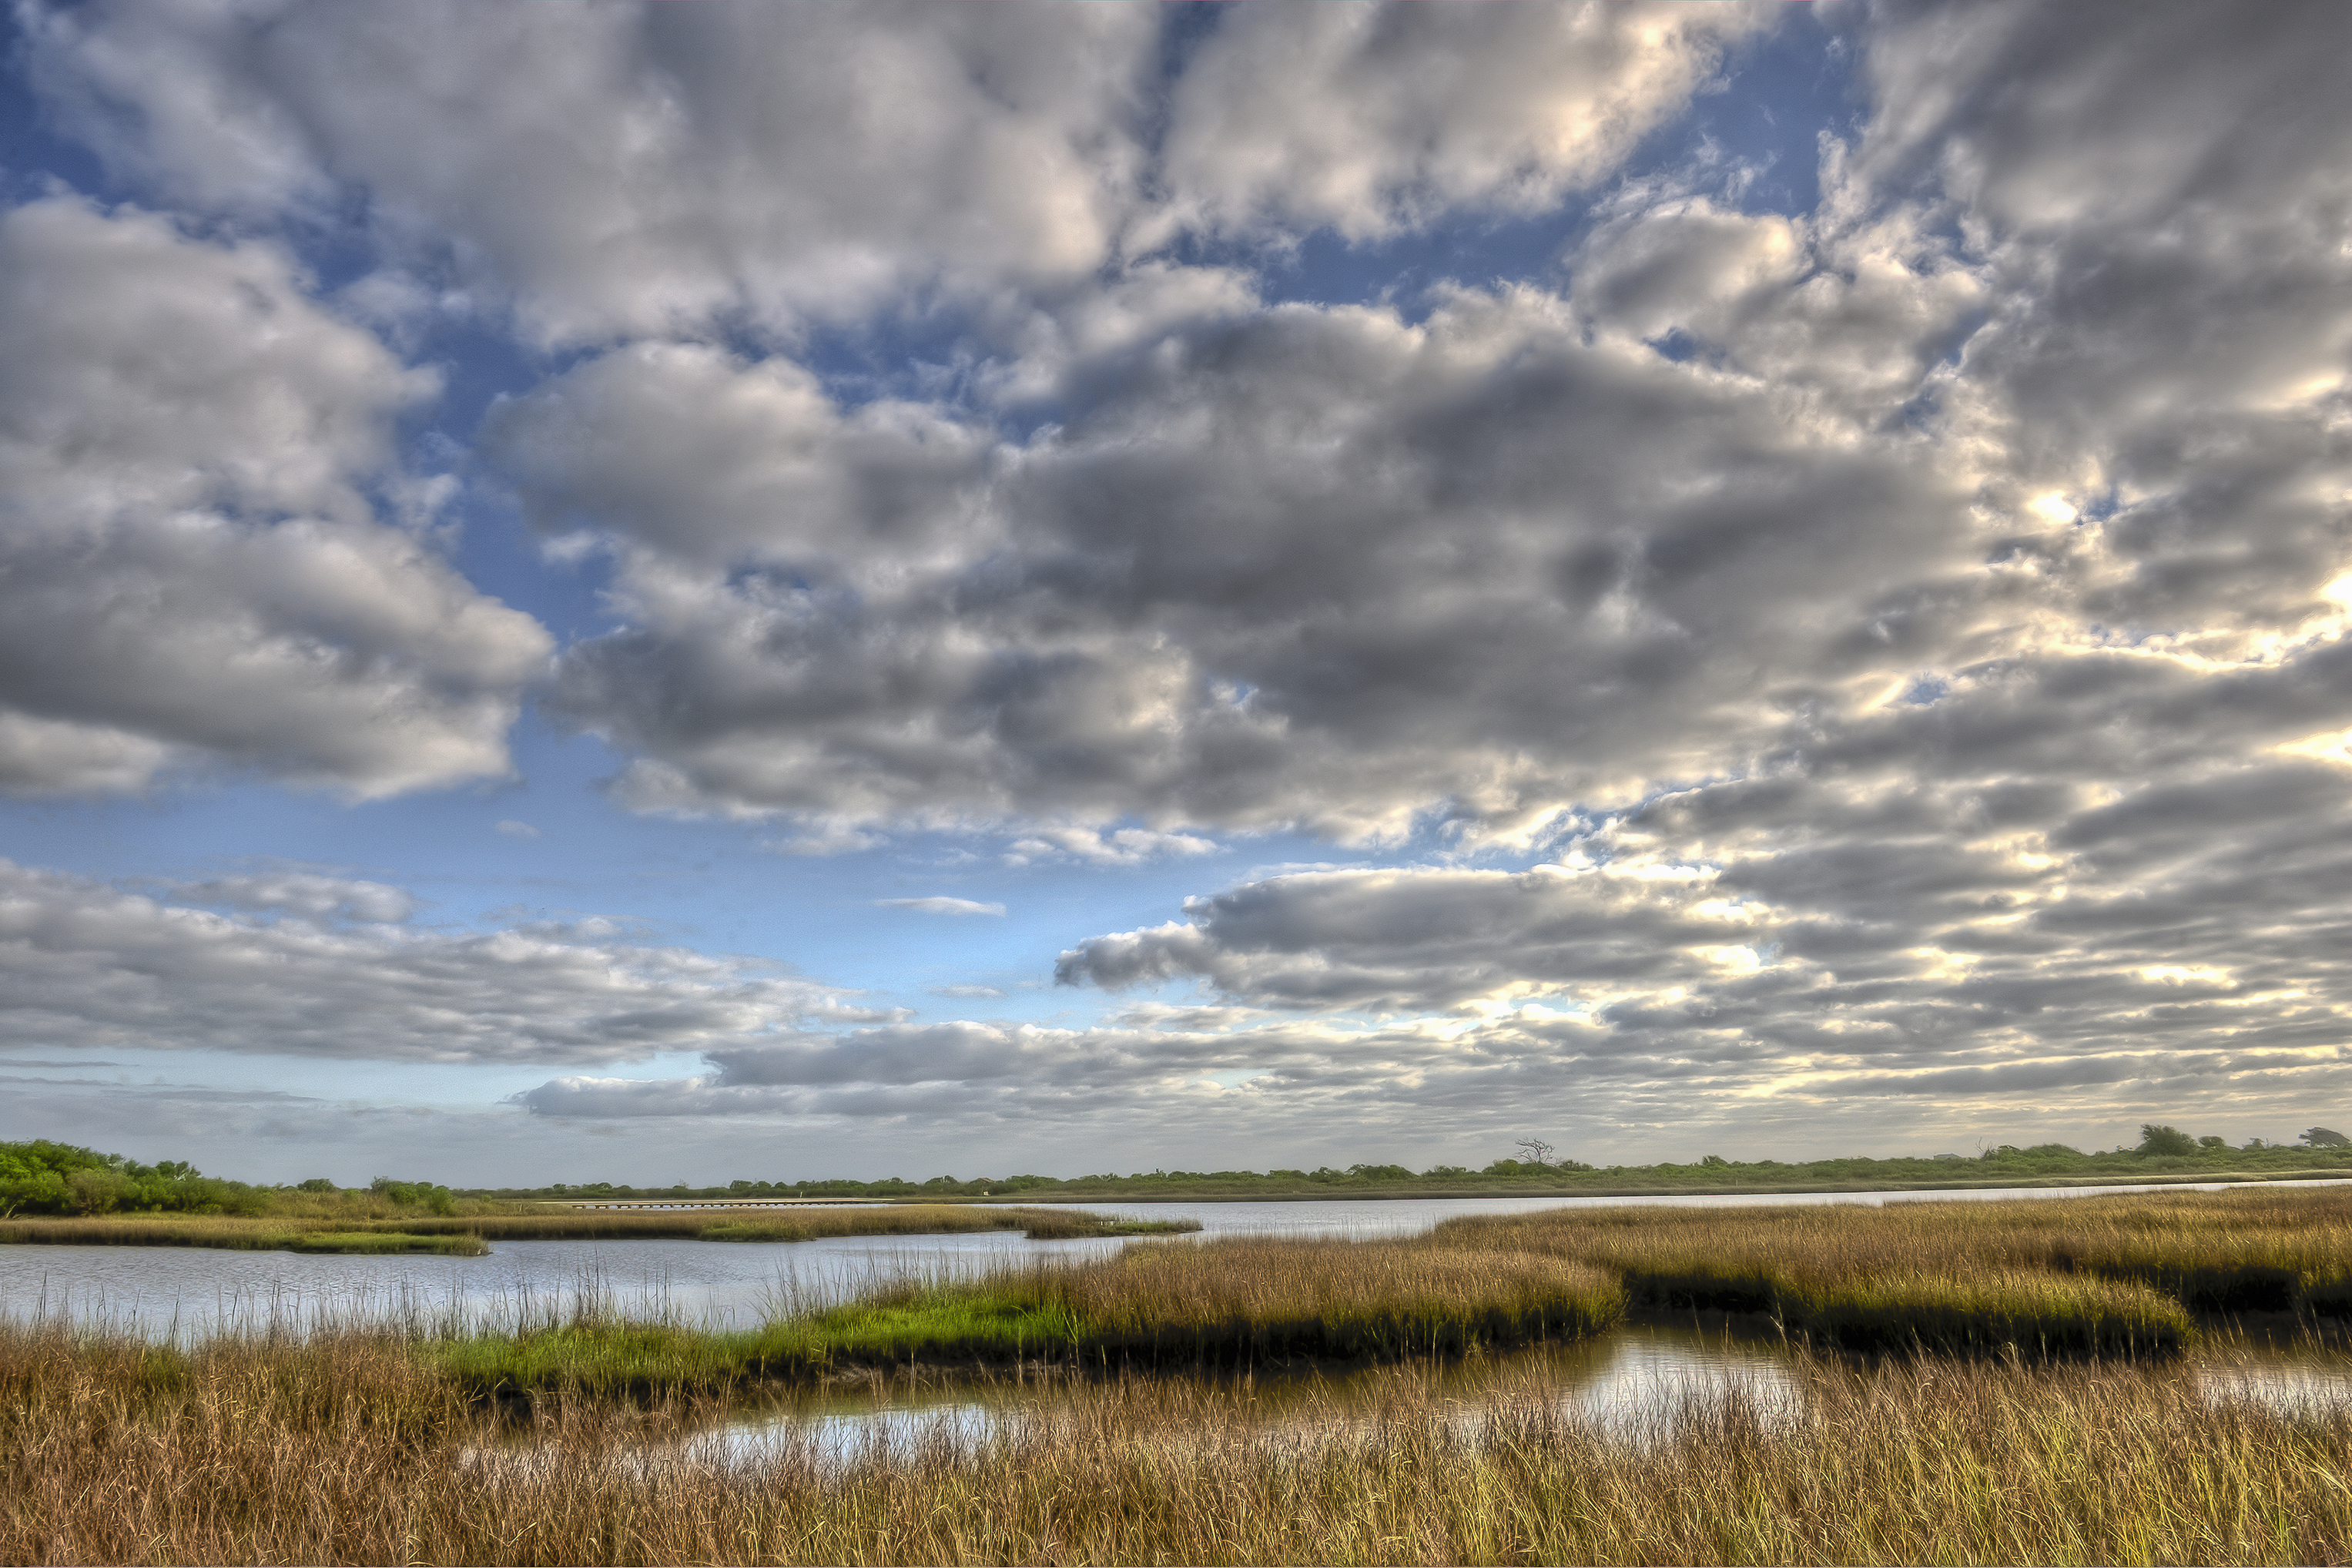 Marsh with some open water under layer of clouds dotting a bright blue sky..